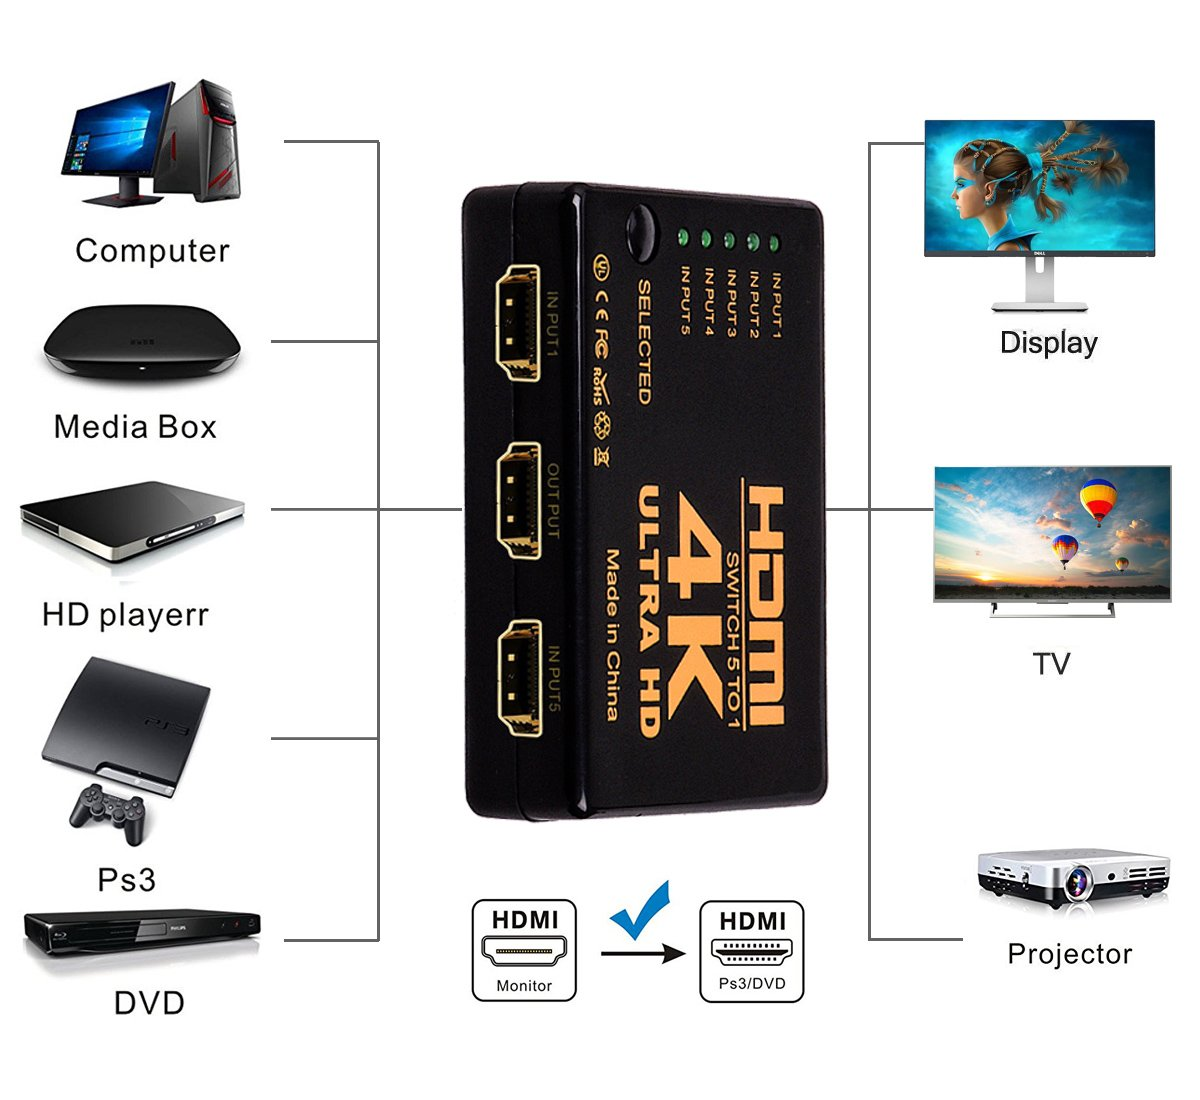 HDMI Switch Splitter,NXLFH Intelligent 5-Port HDMI Switcher, Supports 4K, Full HD1080p, 3D with IR Remote 1080P HD Audio for Nintendo Switch, Xbox One, Roku 3, Apple TV HD TV XBox PS3 PS4 5 in 1 out by NXLFH (Image #4)